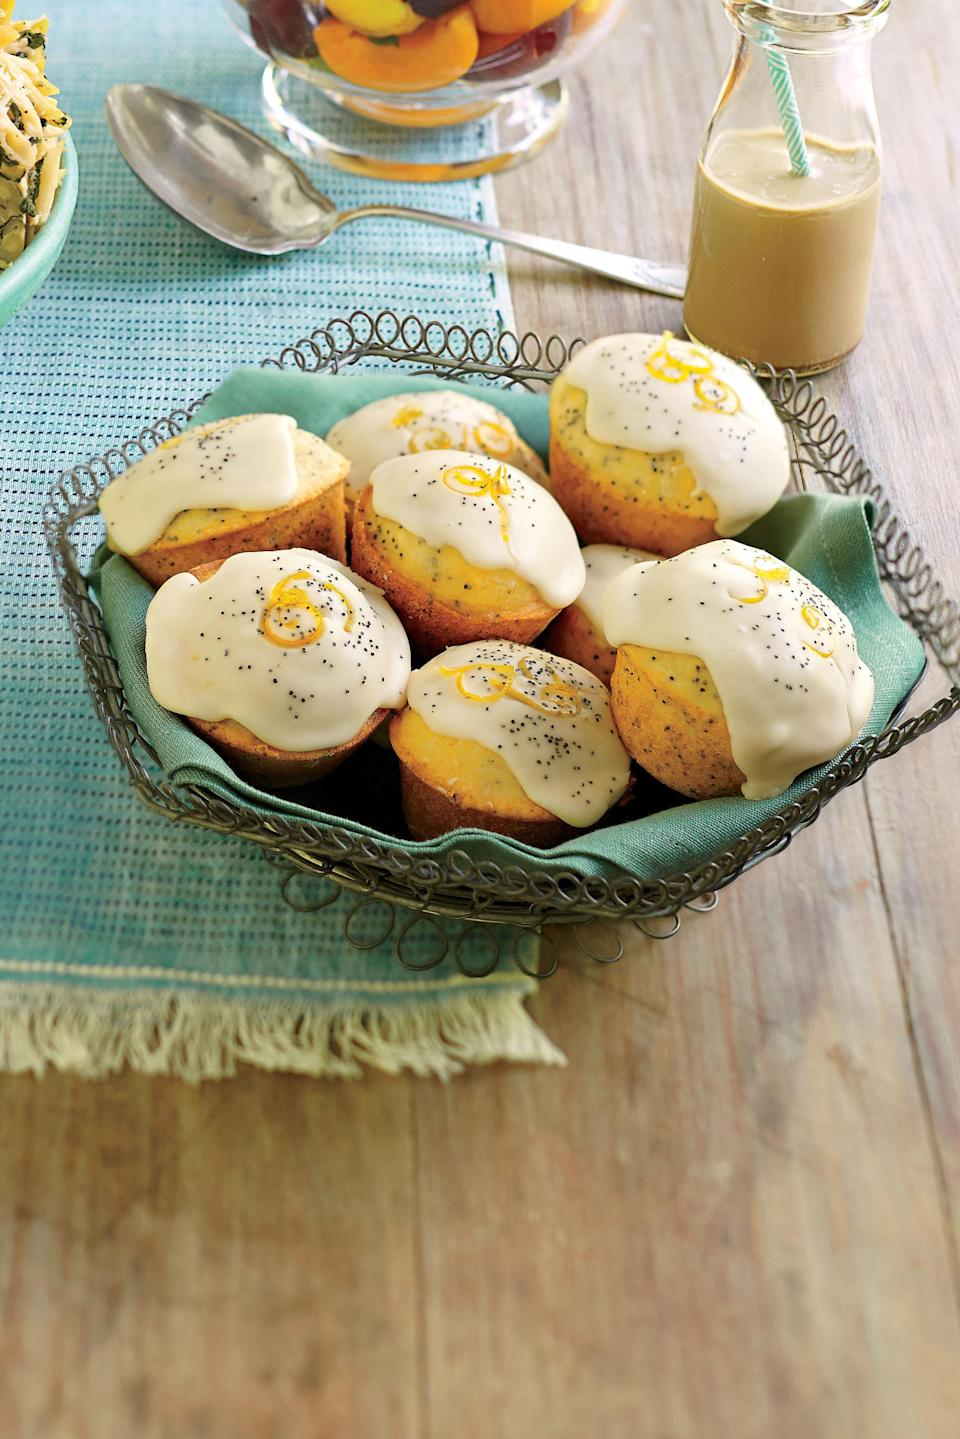 """<p><strong>Recipe:</strong> <a href=""""http://www.myrecipes.com/recipe/poppy-seed-ginger-muffins-50400000130101/"""" rel=""""nofollow noopener"""" target=""""_blank"""" data-ylk=""""slk:Poppy Seed-Ginger Muffins"""" class=""""link rapid-noclick-resp""""><strong>Poppy Seed-Ginger Muffins</strong></a></p> <p>To thin the glaze, add more orange juice.</p>"""